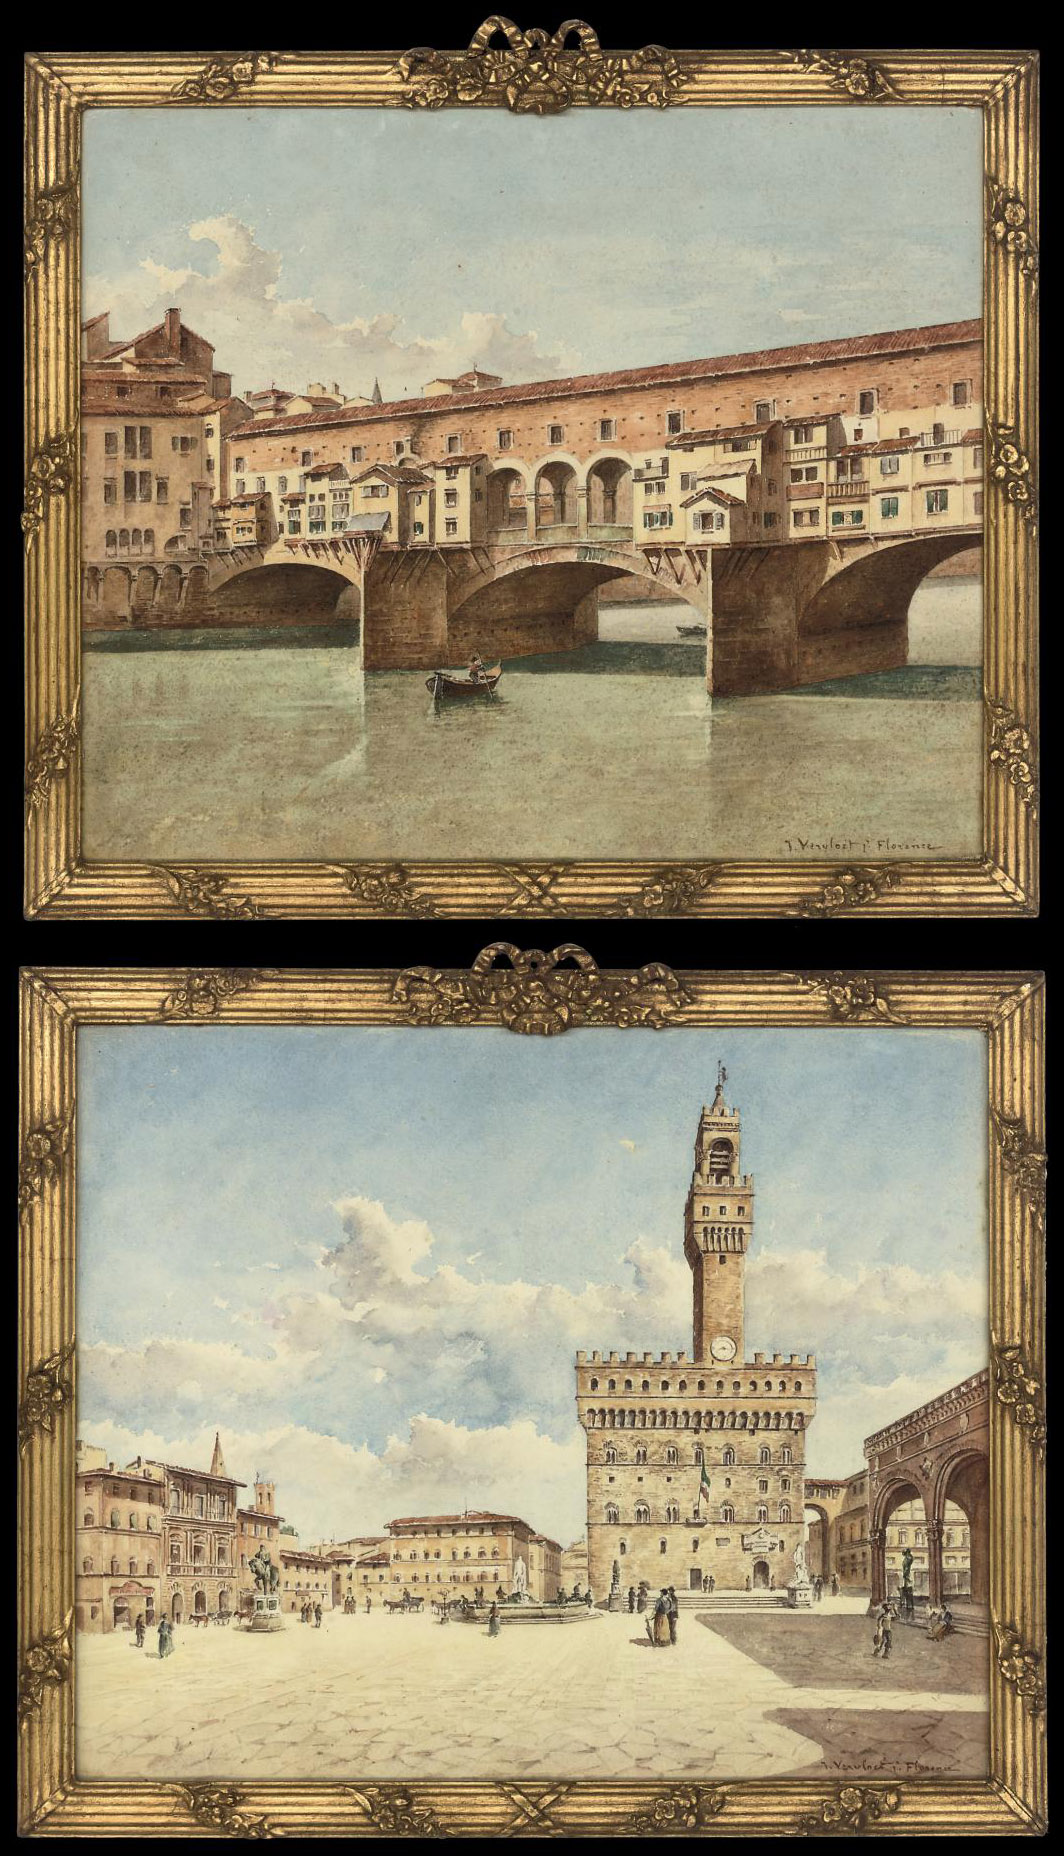 The Ponte Vecchio, Florence; and The Palazzo Vecchio, Florence